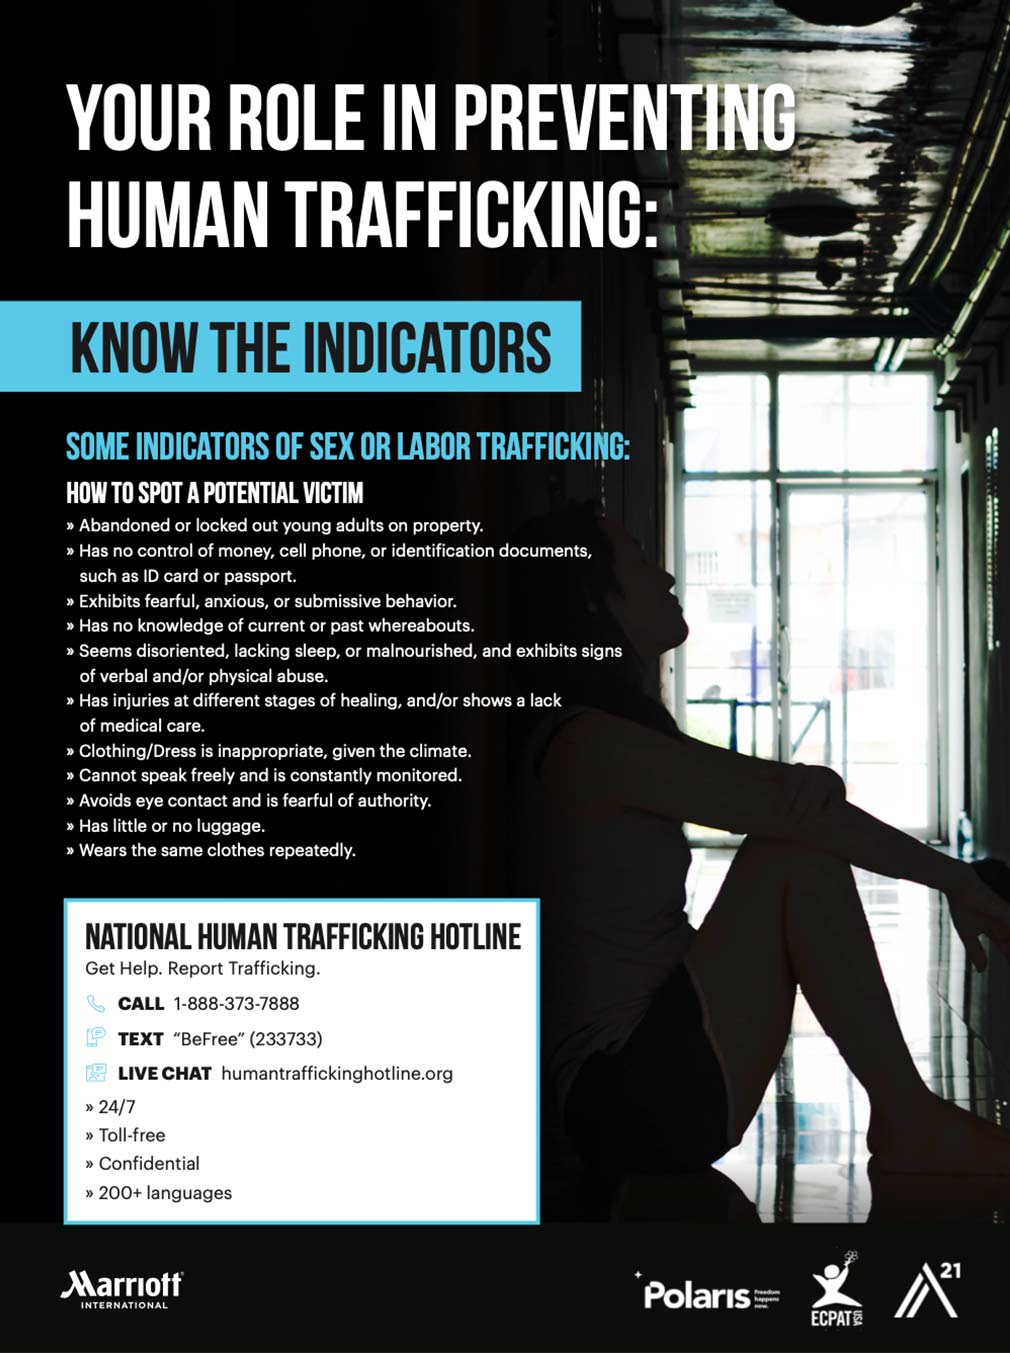 human trafficking: know the indicators, see the signs poster